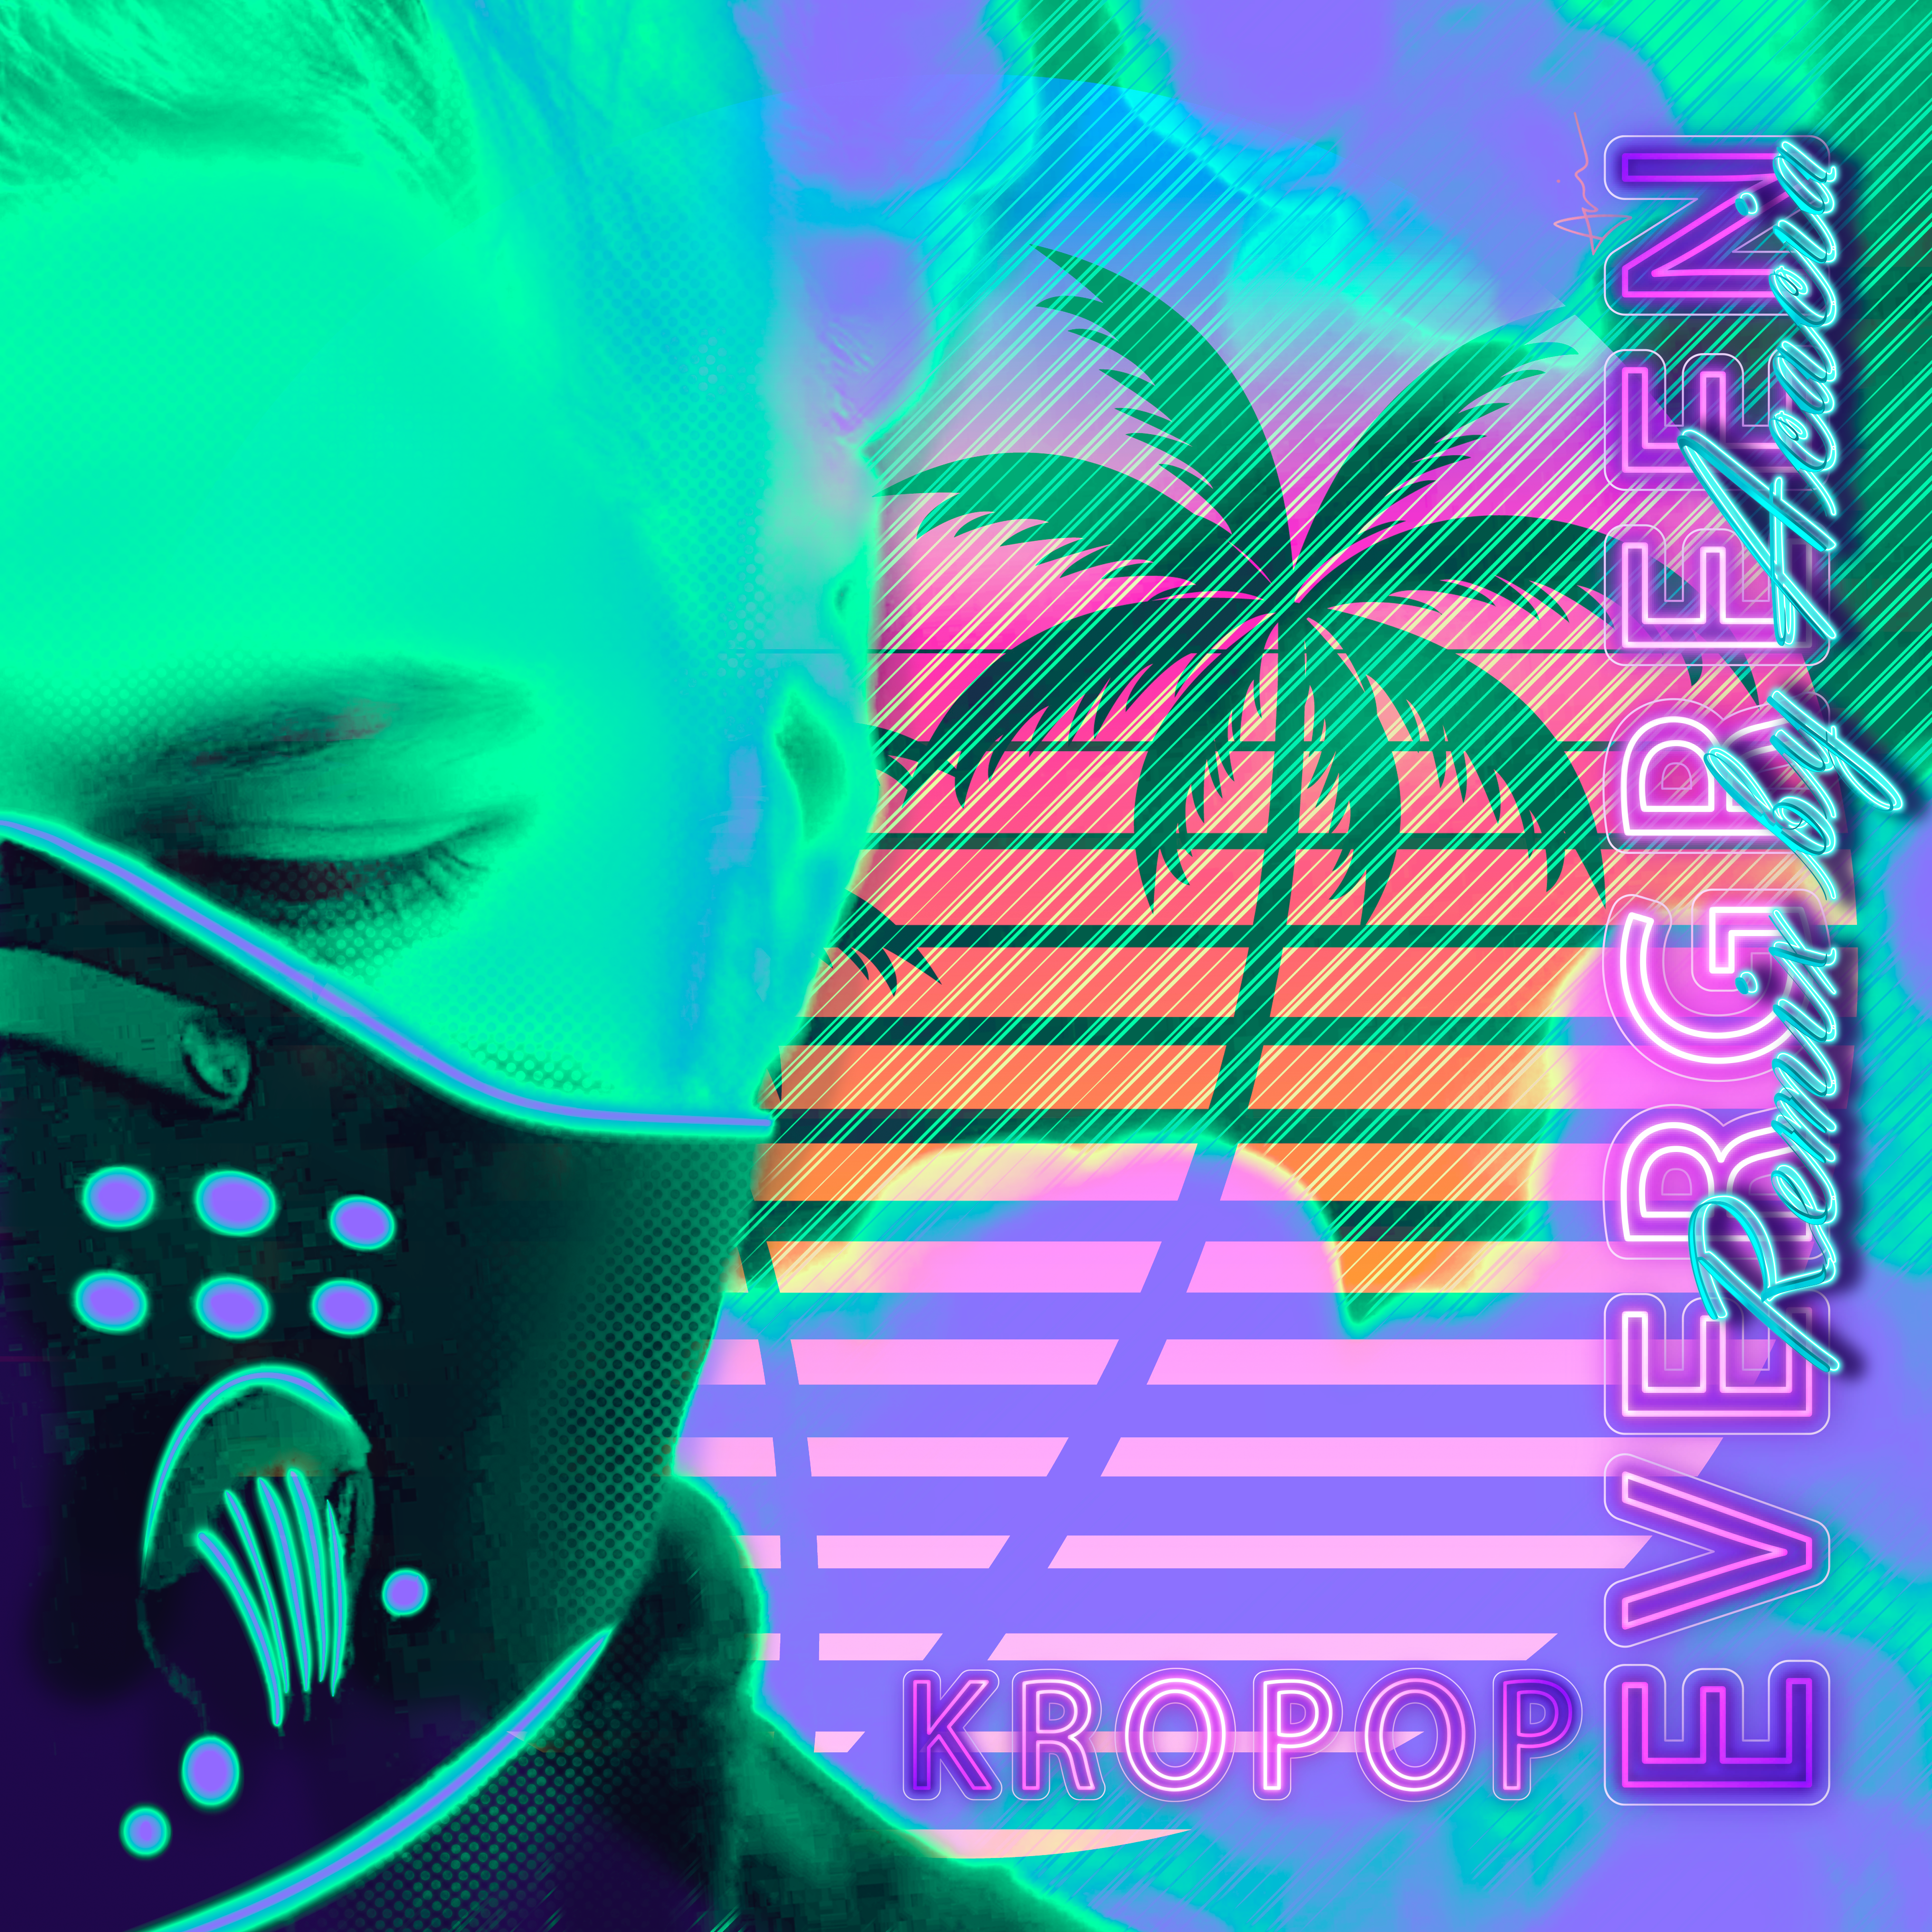 """""""Evergreen (Remix by Acacia)"""" - Dance Remix of Kropop's """"Evergreen"""" - Copyright Acacia Carr and Kropop, 2021. All rights reserved. Artwork by Acacia Carr"""